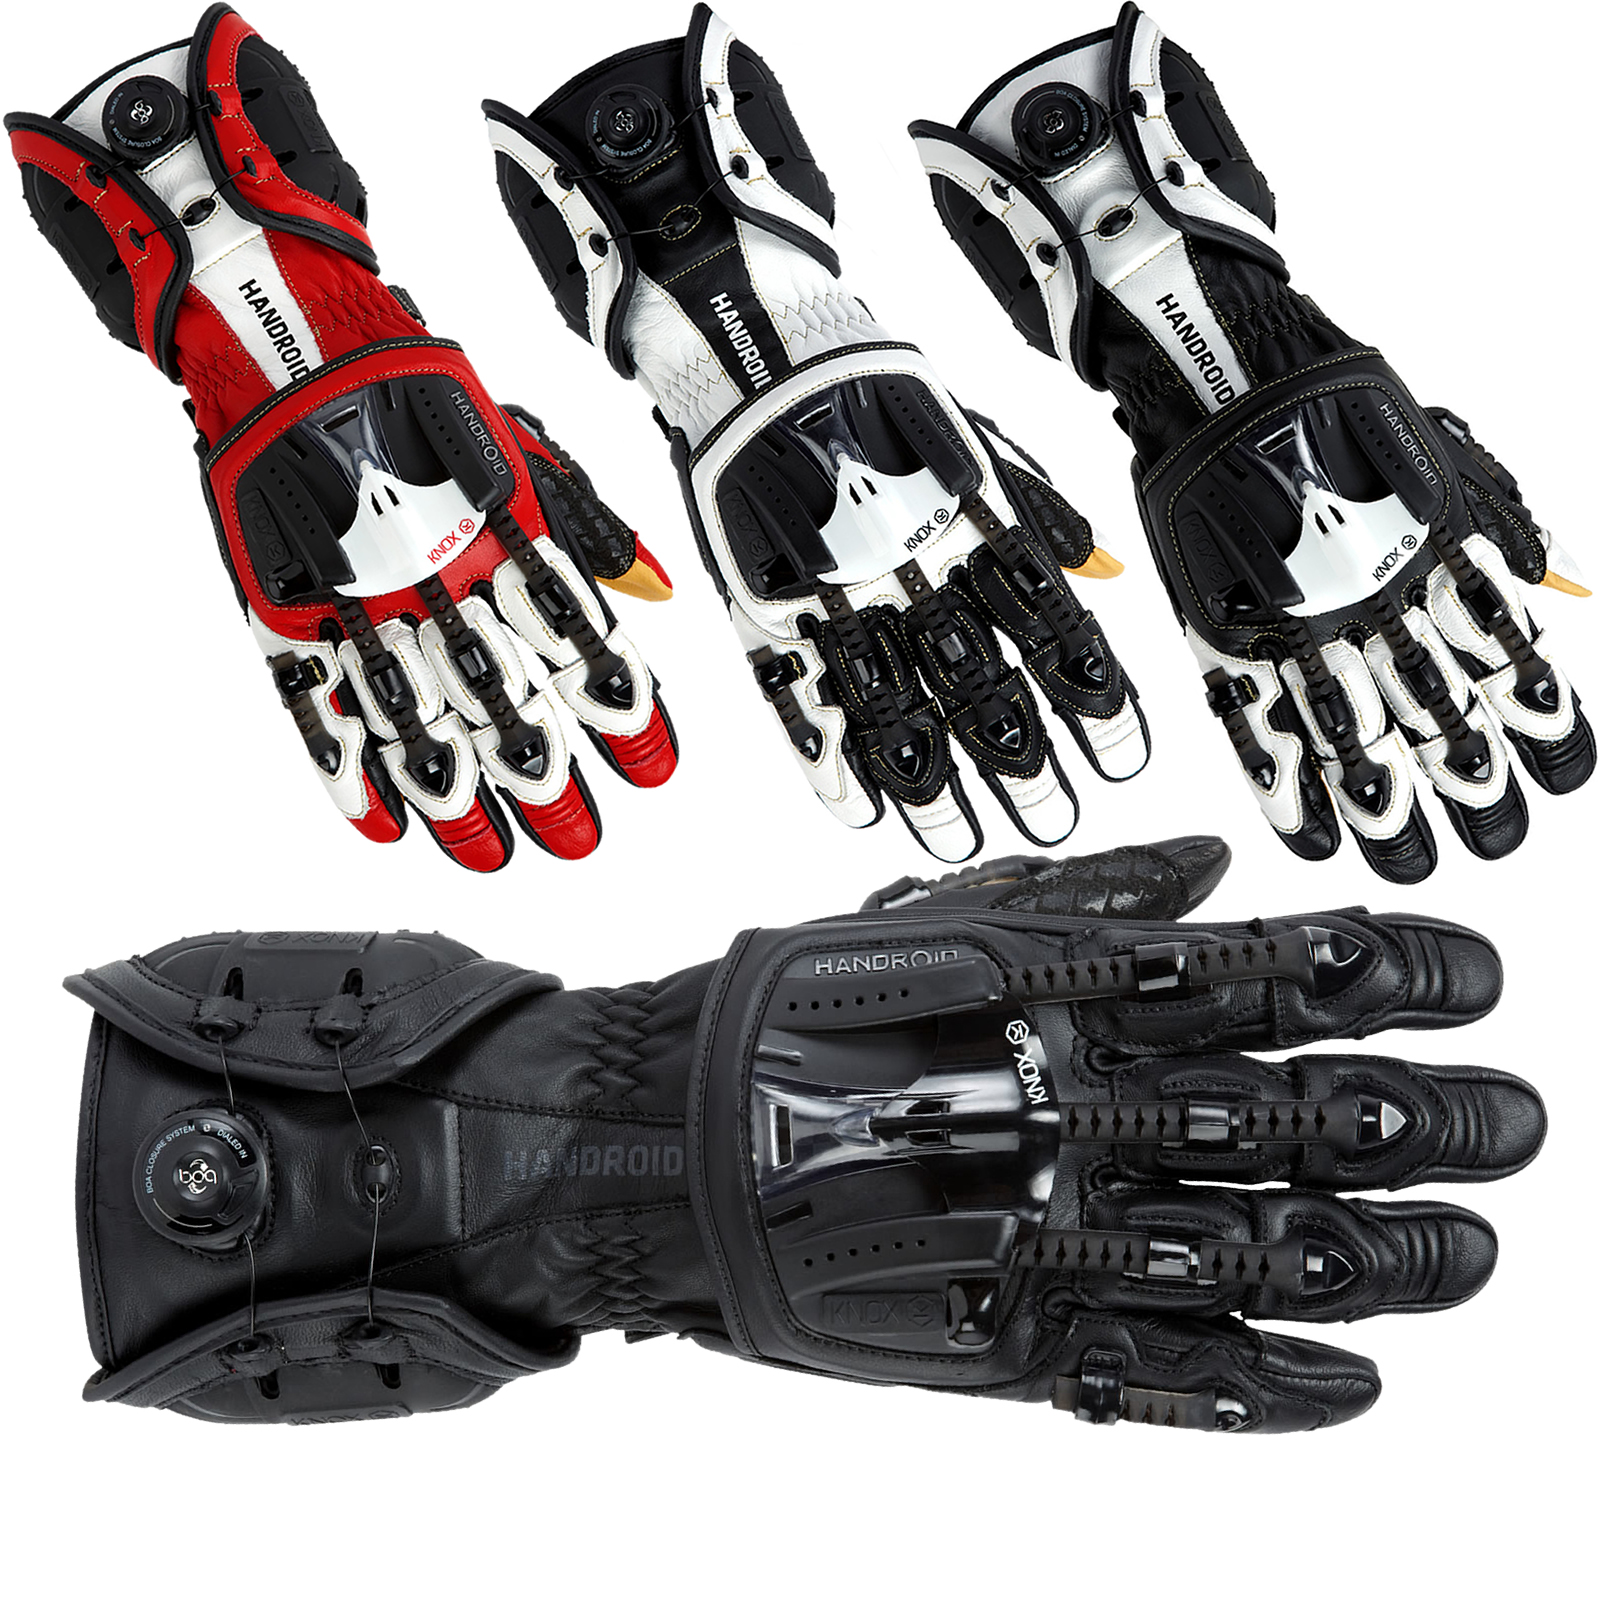 Motorcycle gloves exoskeleton - Knox Handroid Mkiii Leather Motorcycle Gloves